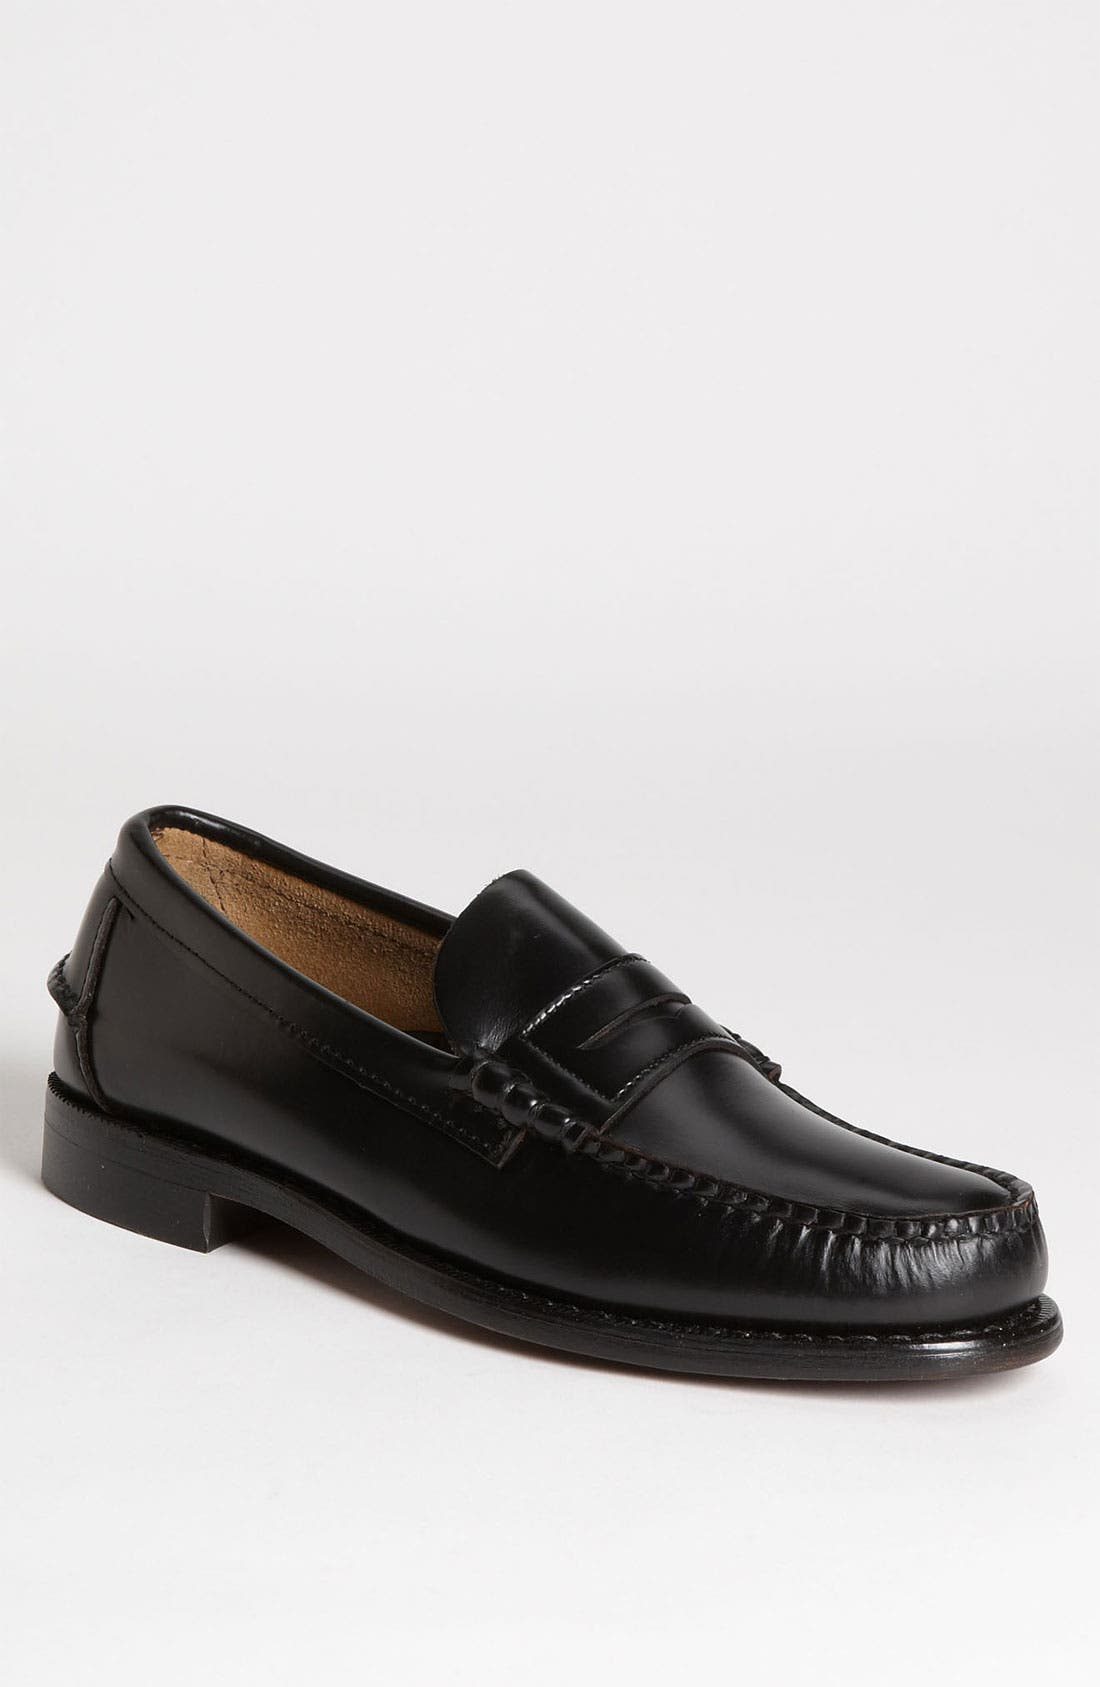 Alternate Image 1 Selected - Sebago Classic Penny Loafer (Online Only)